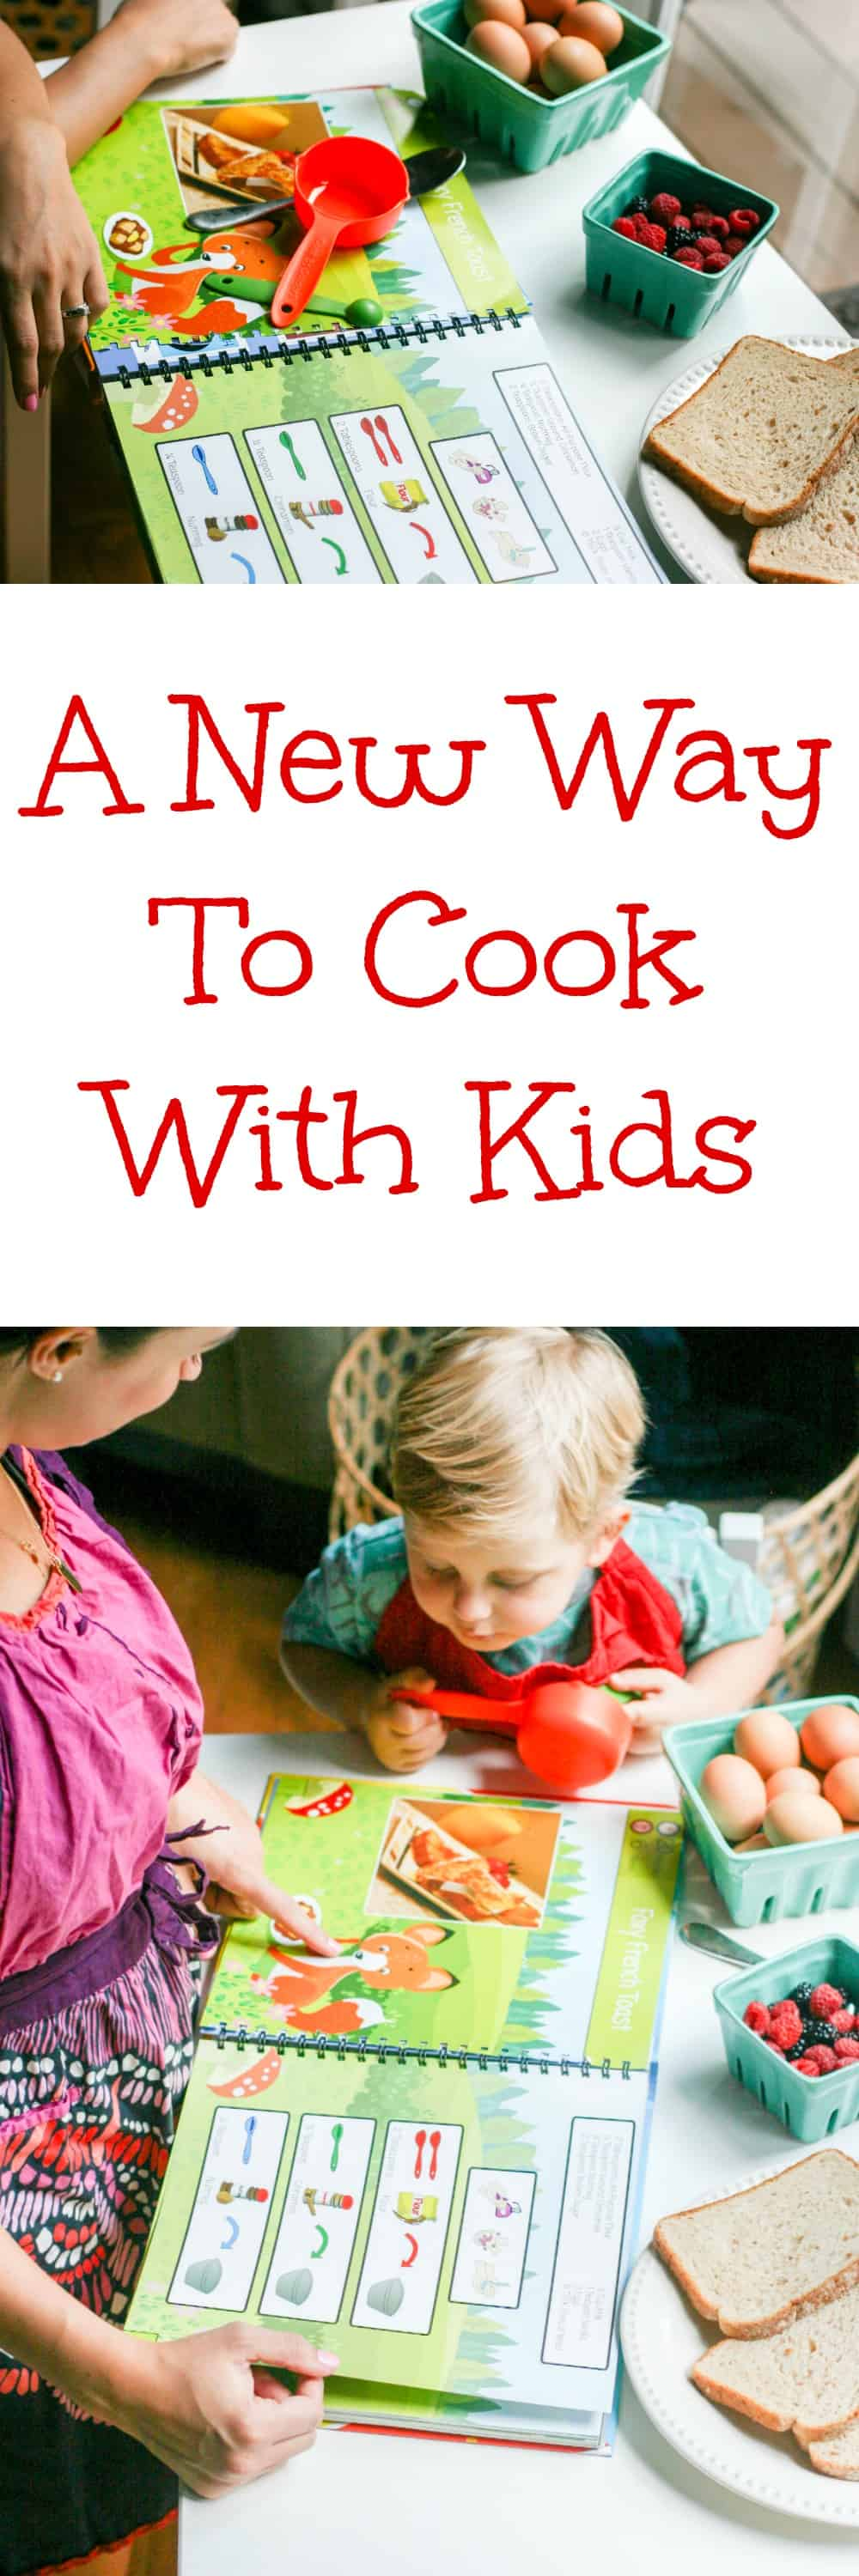 A New Way To Cook With Kids